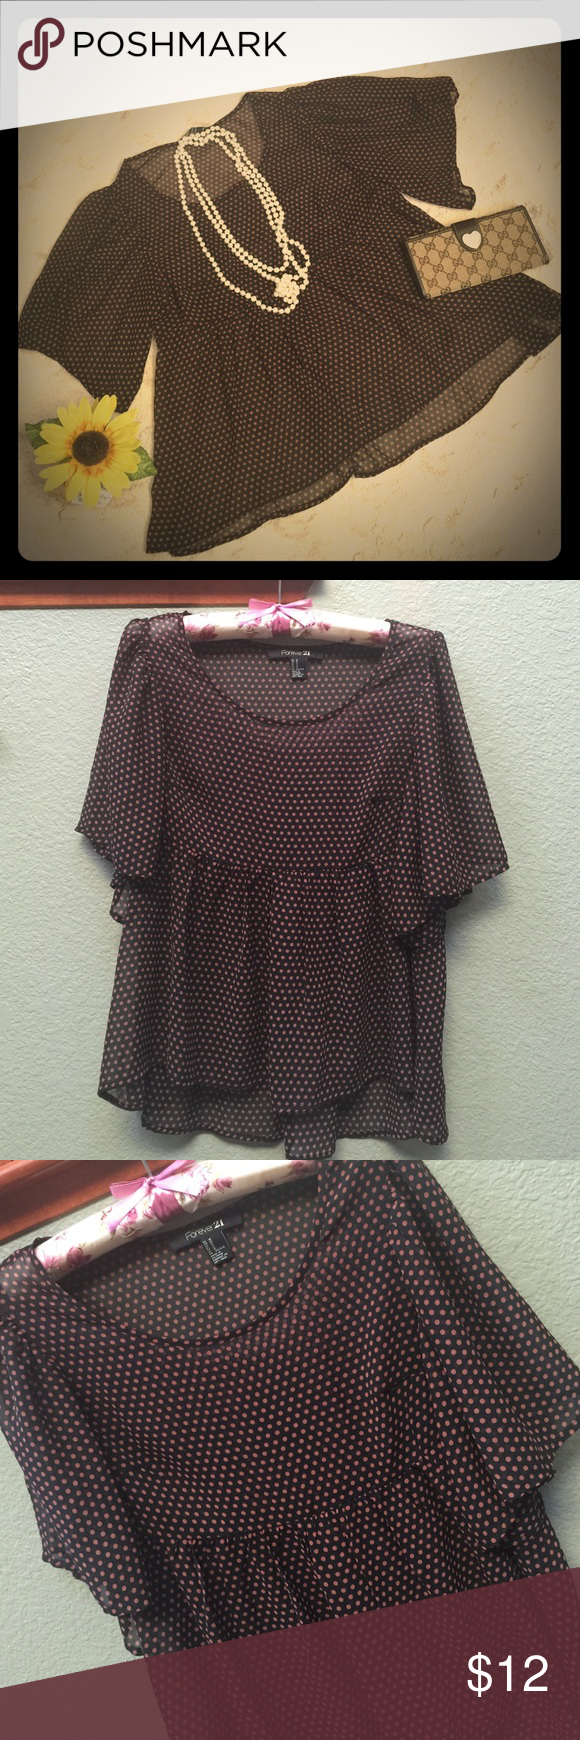 Forever 21 blouse Semi sheer blouse from Forever 21, black and tan colored dots. Washed not worn. Pets and smoke free home. Forever 21 Tops Blouses